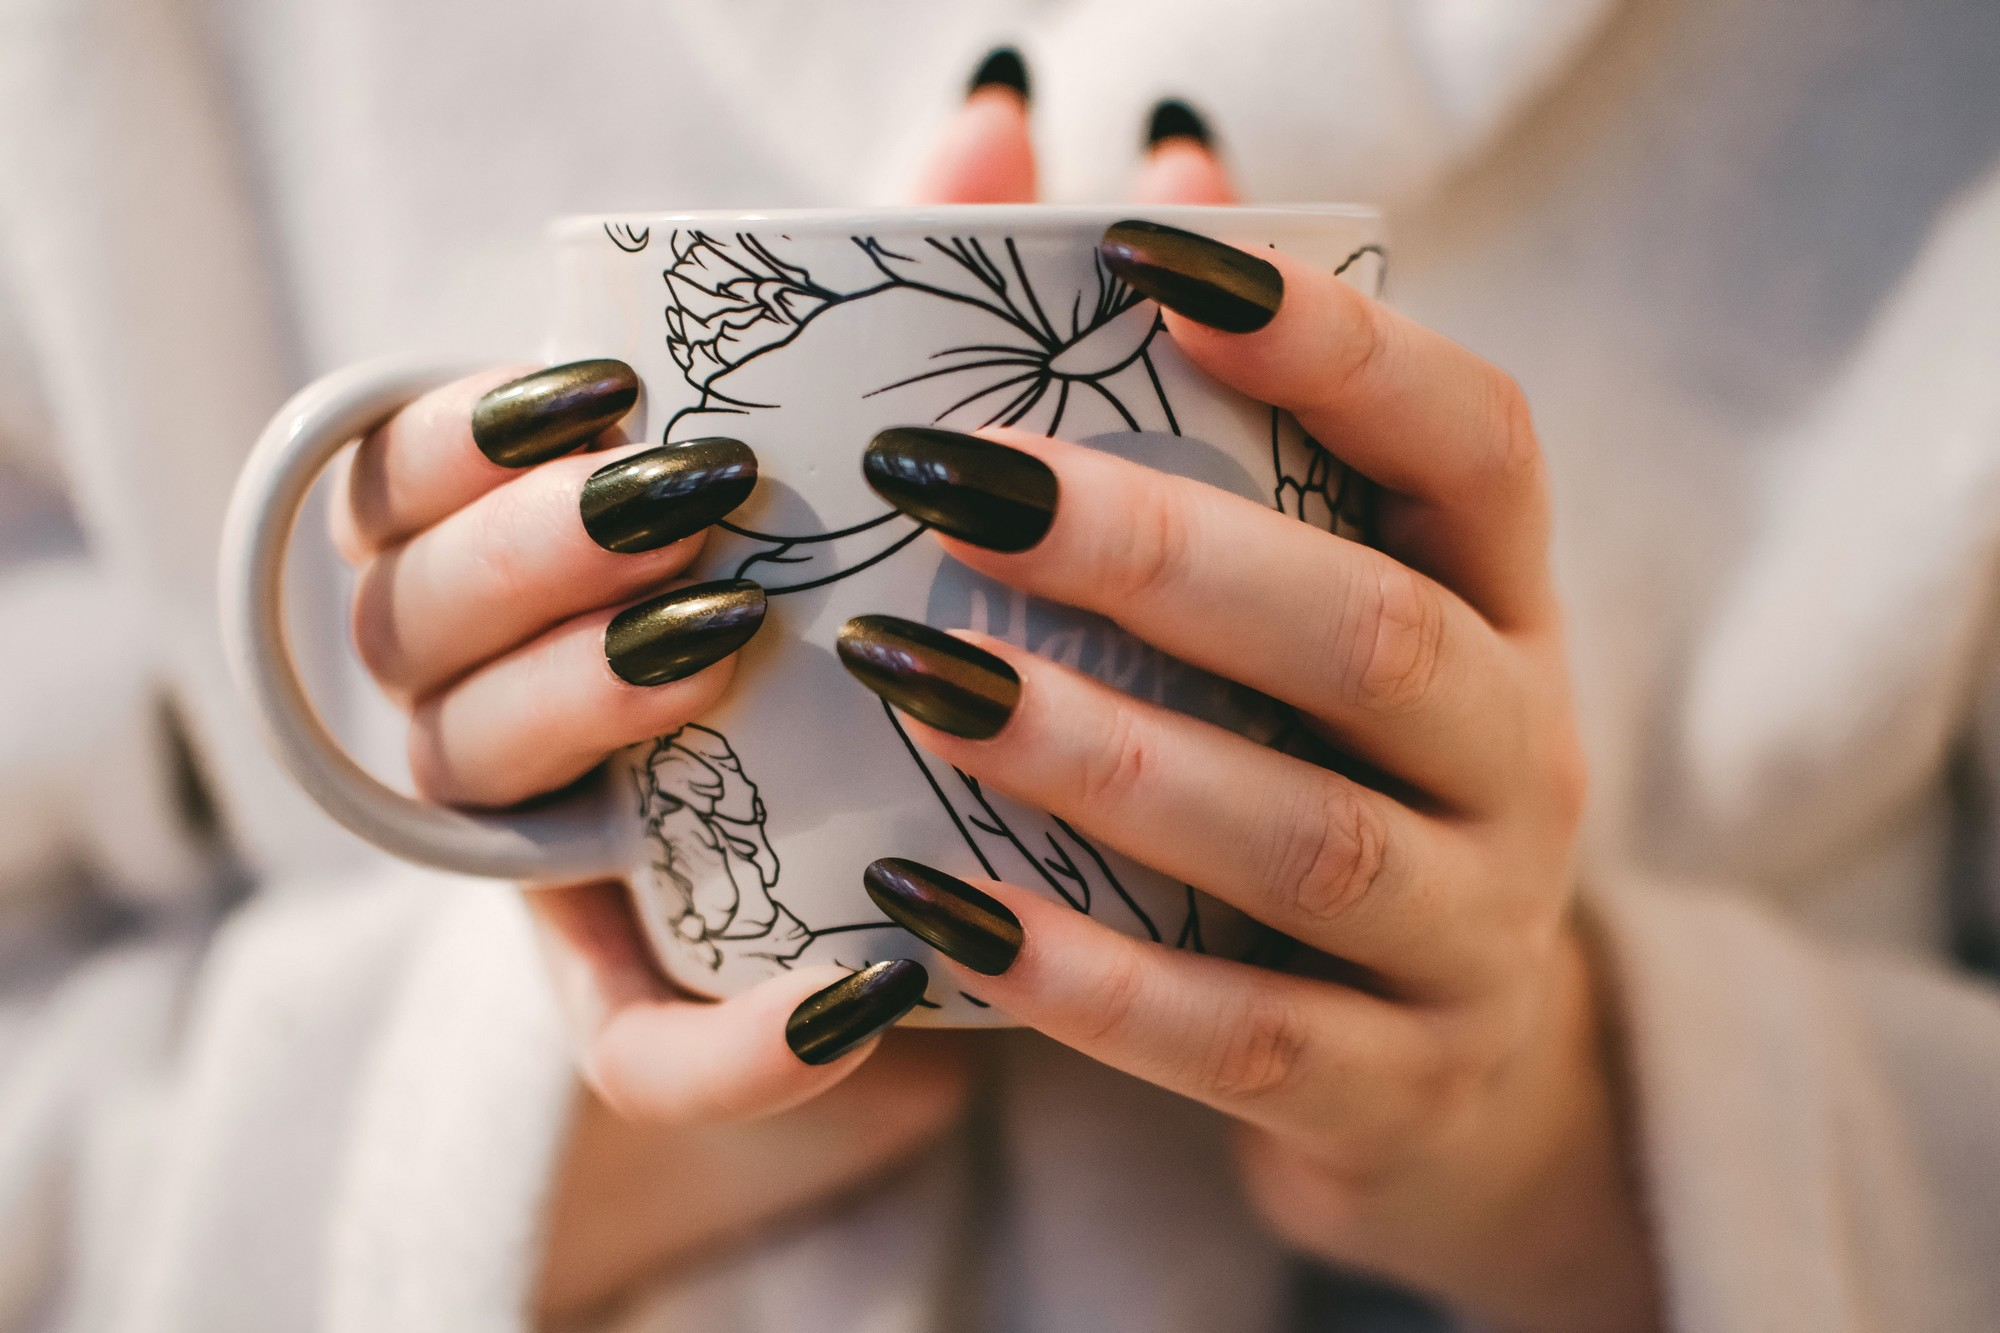 close up picture of a woman holding a flower patterned mug whilst wearing black nail polish on her long nails.